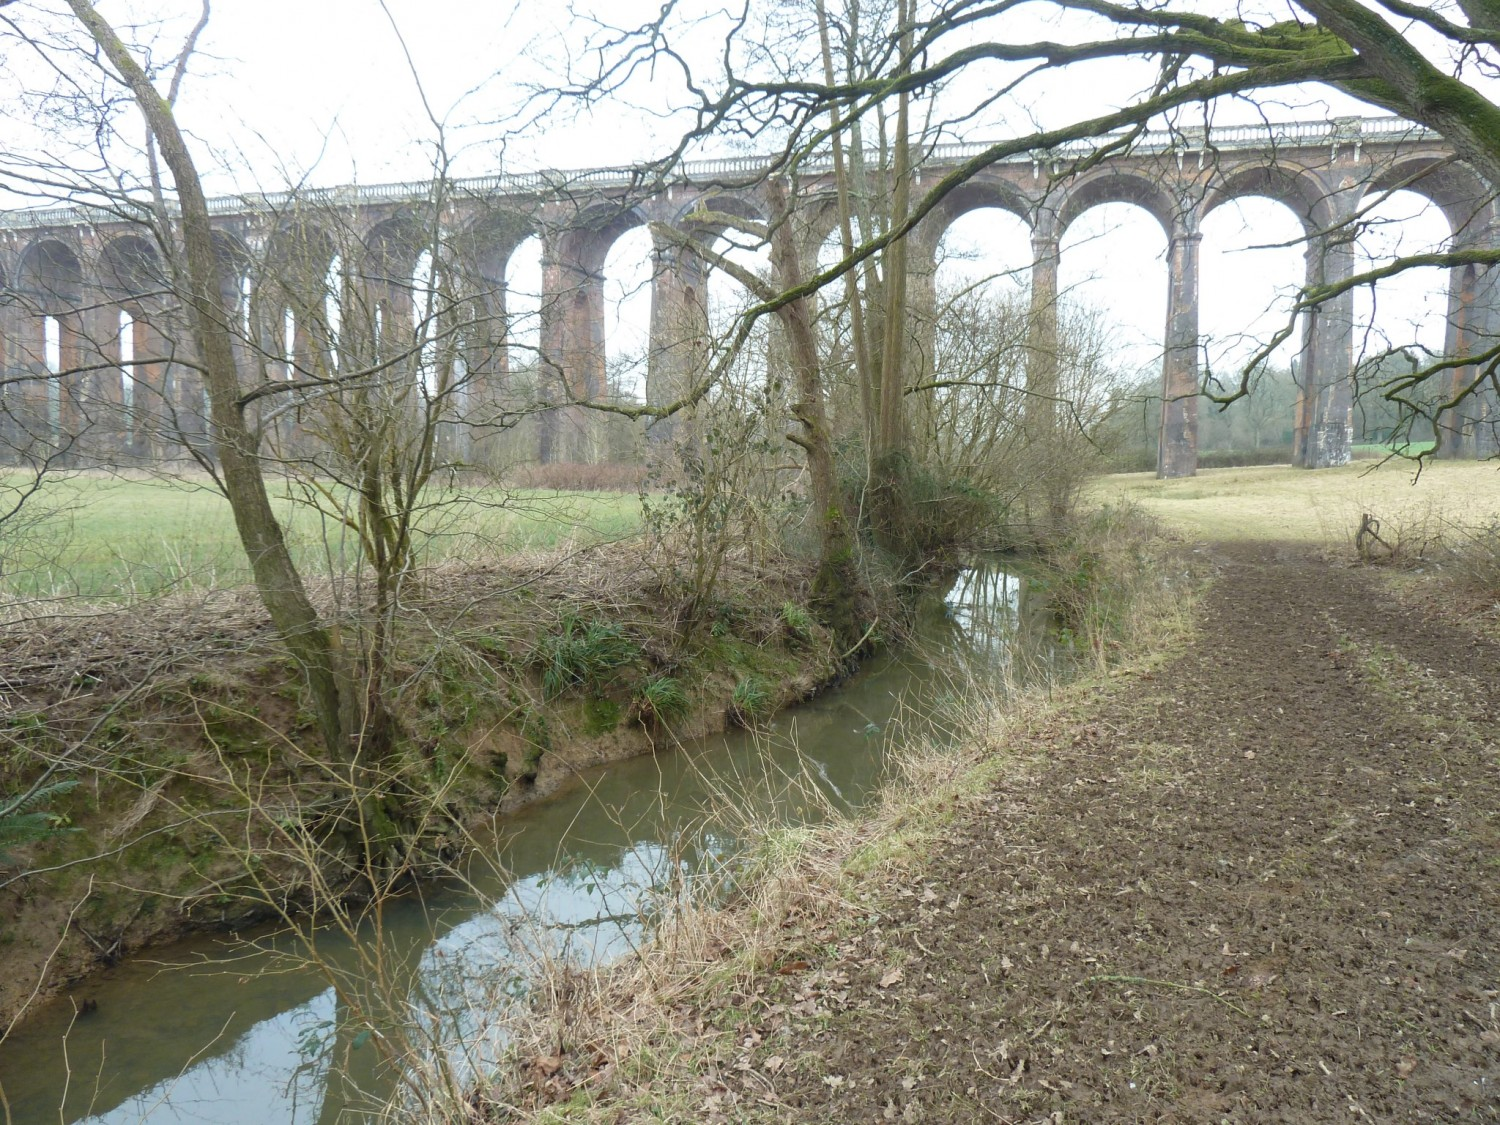 Balcombe Viaduct and the River Ouse